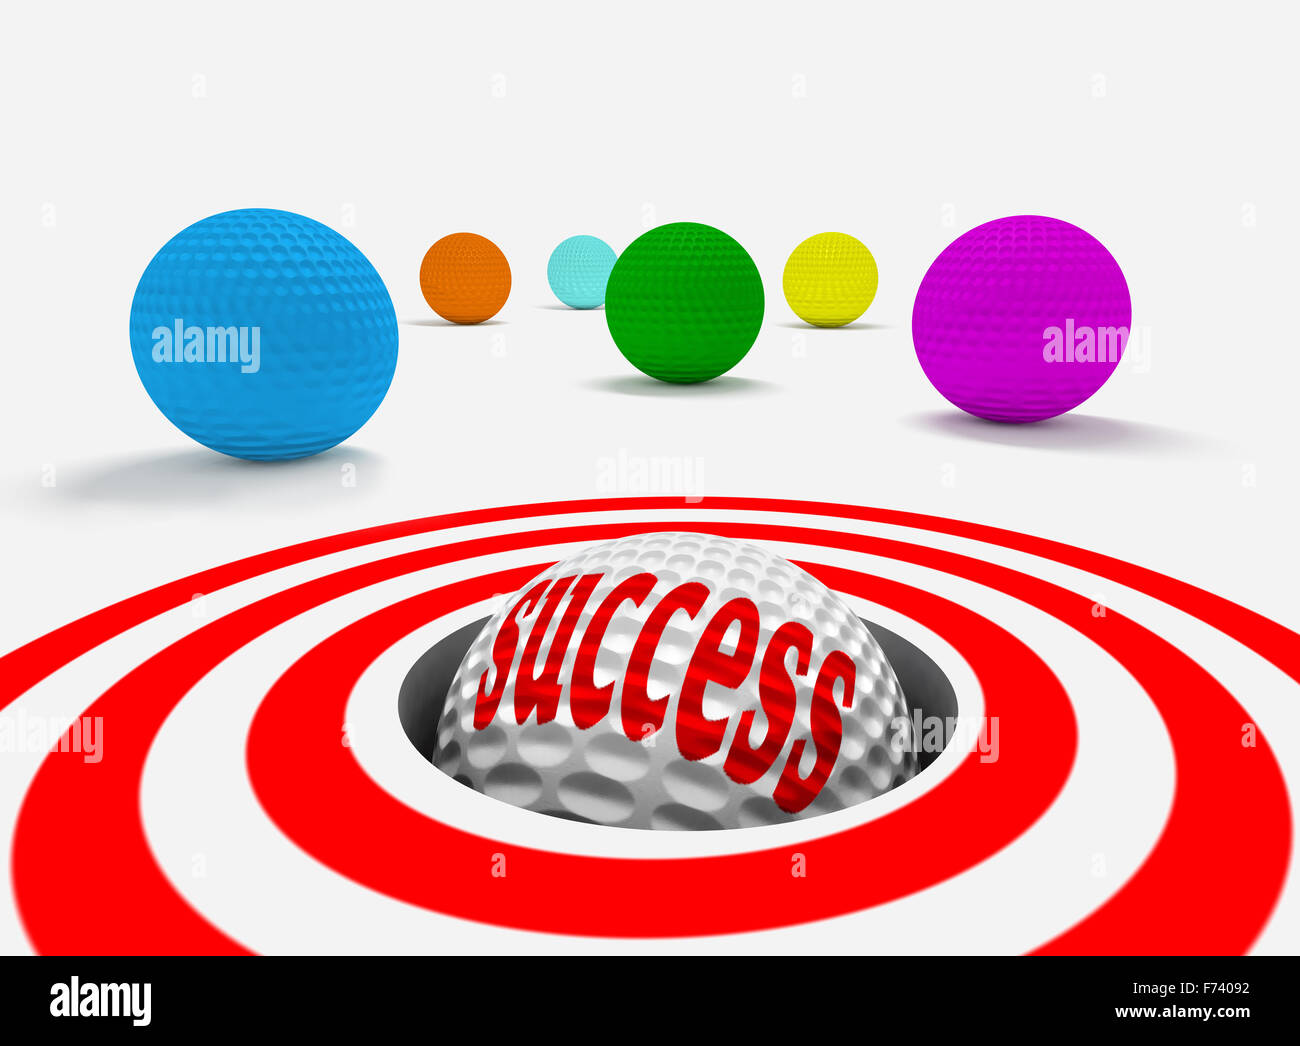 Conceptual 3d image of success with golf balls - Stock Image